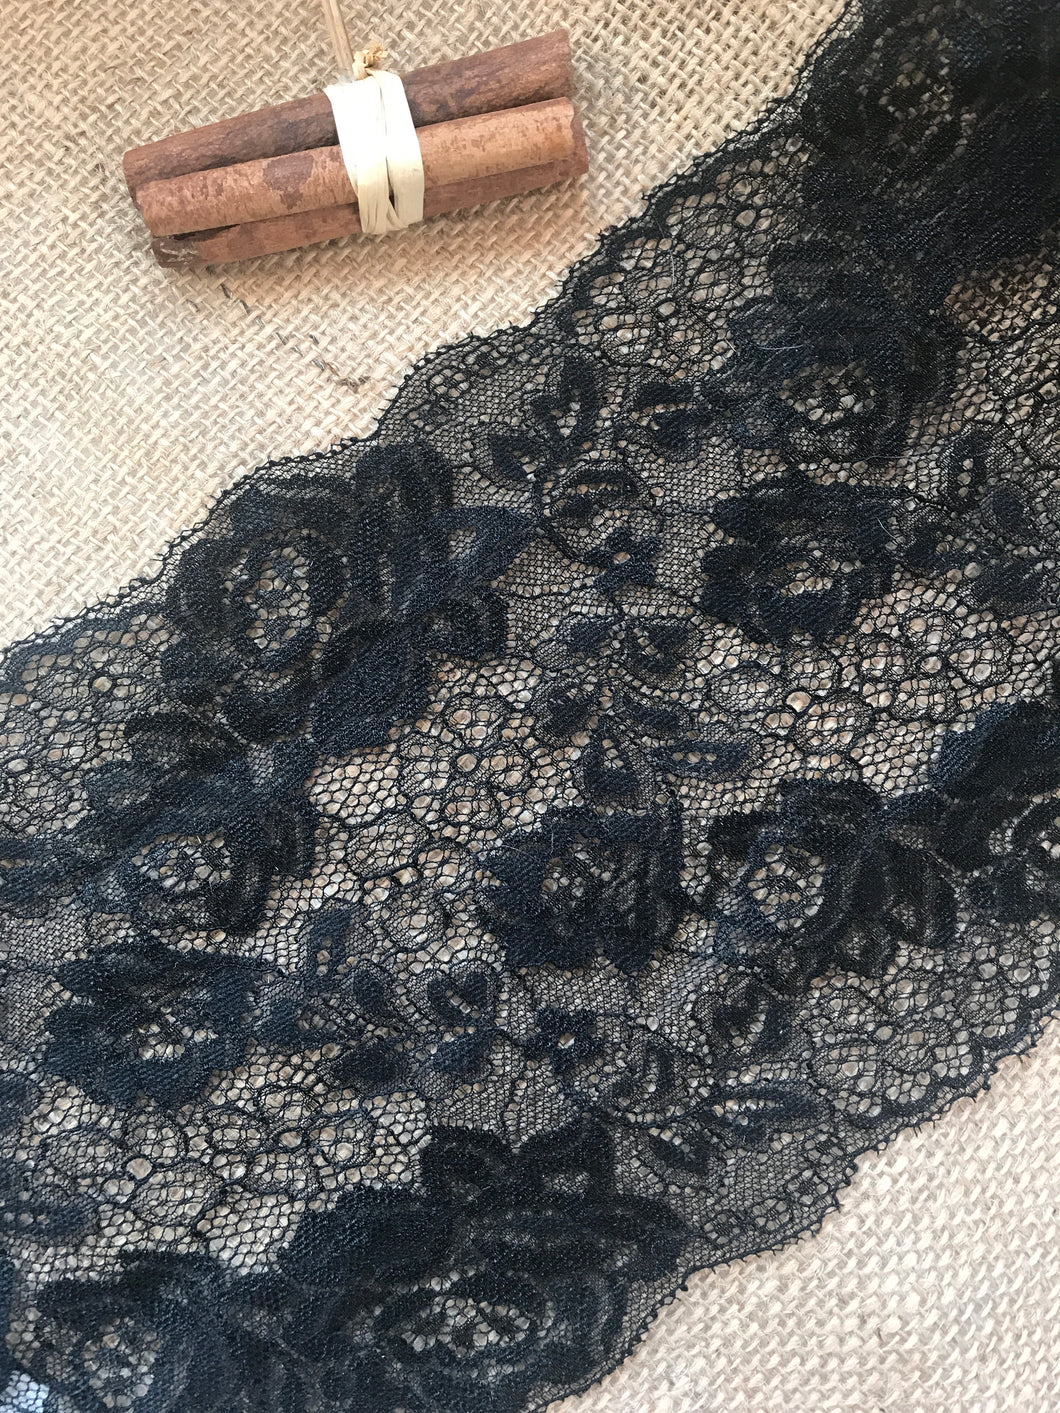 Beautiful Black Floral Delicate Lace Trimming 6.5